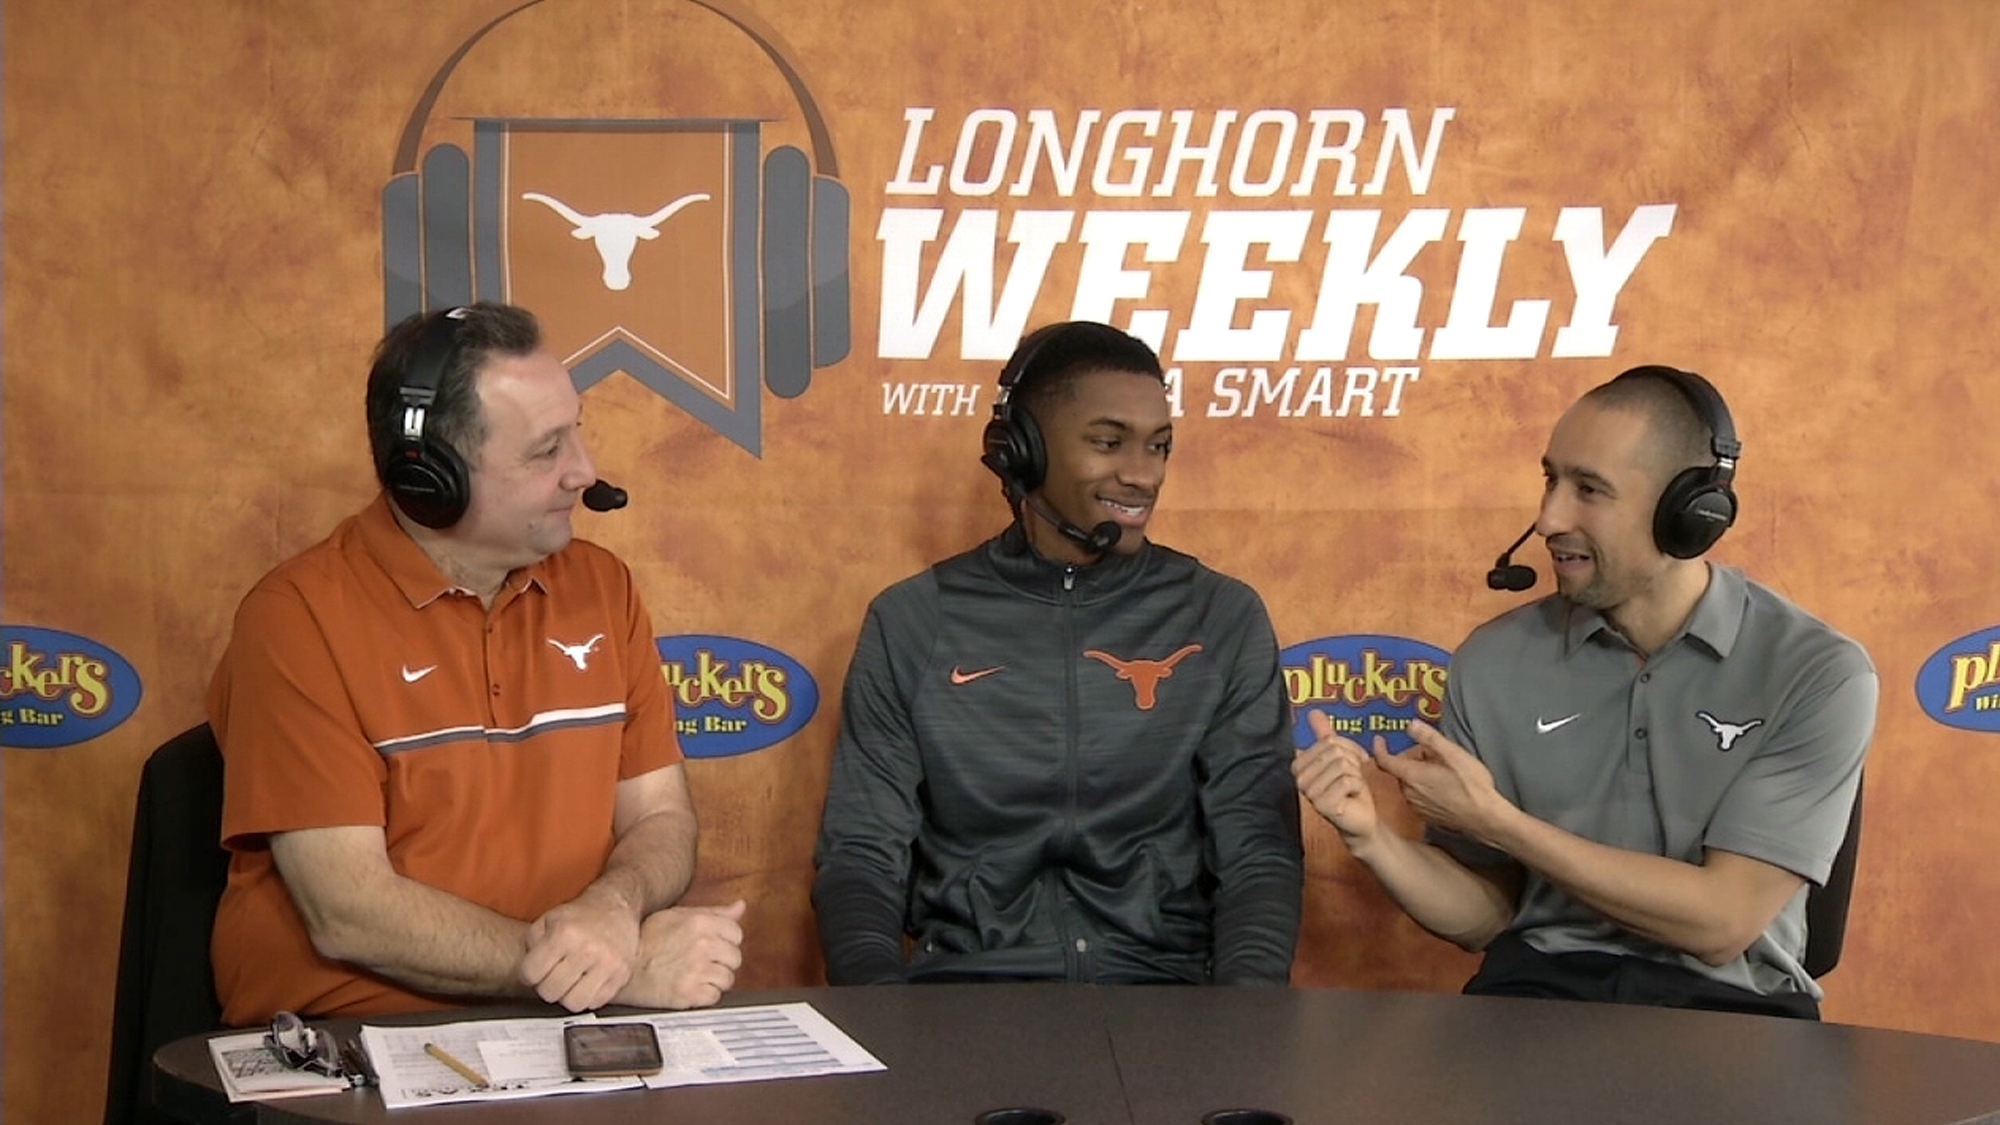 Febres_longhorns_weekly_website